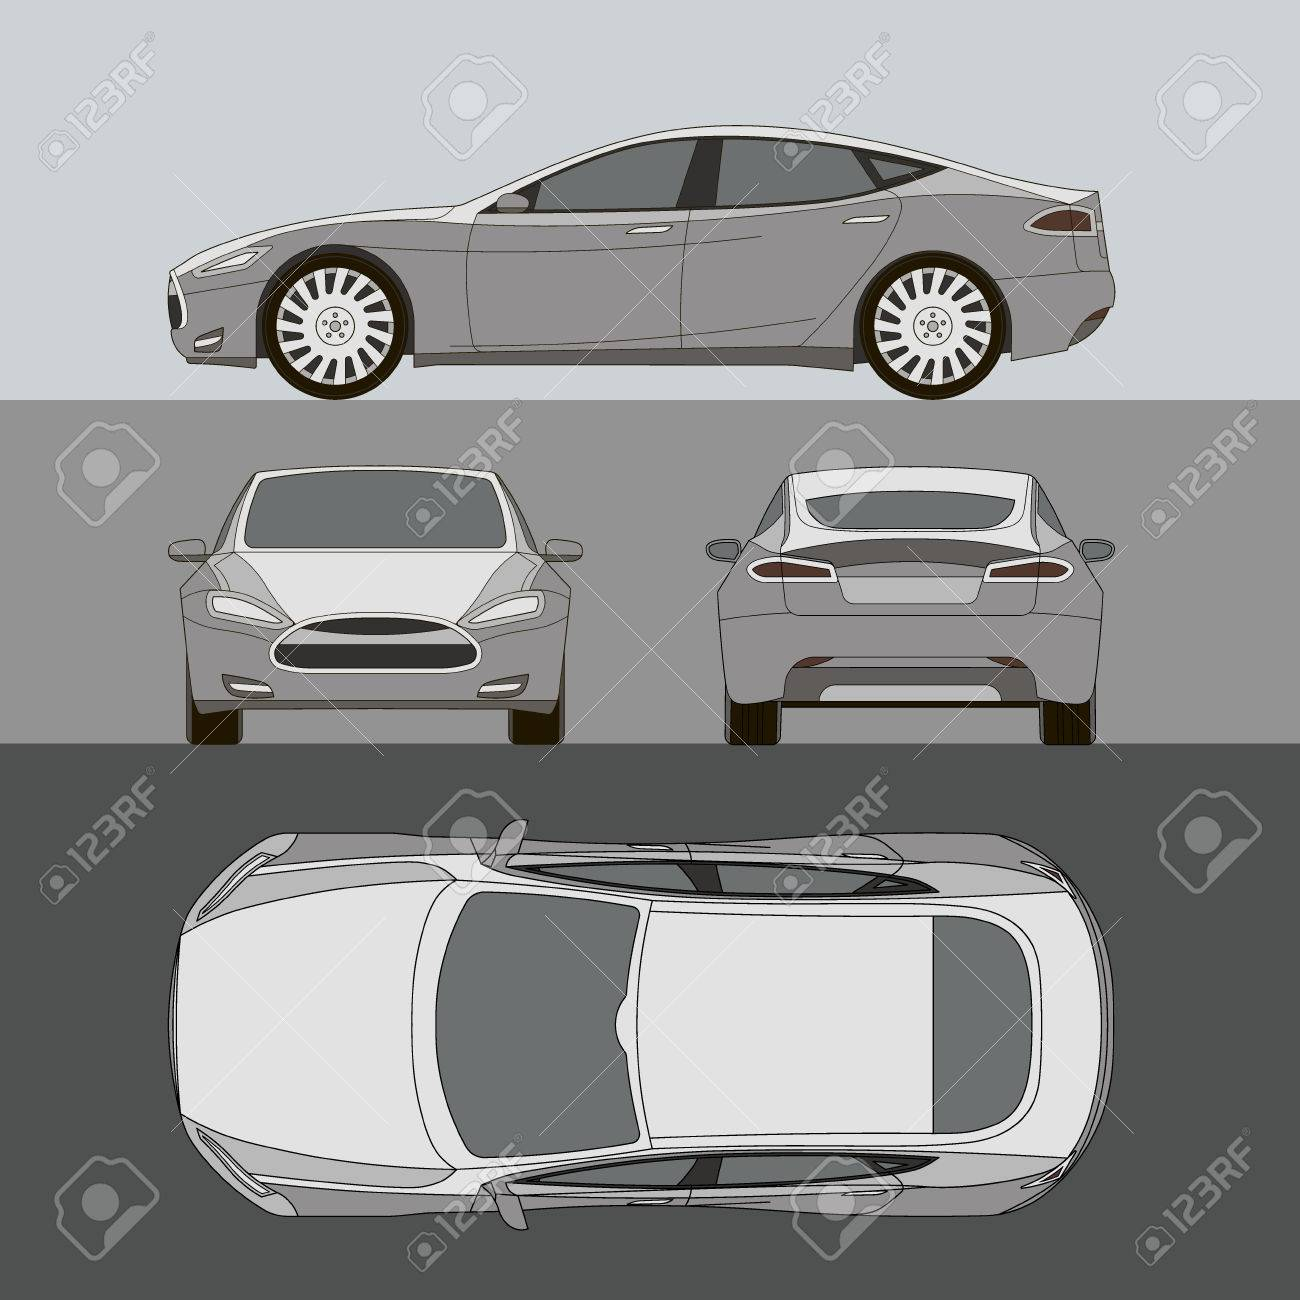 Car line draw insurance rent damage condition report form car line draw insurance rent damage condition report form blueprint stock vector 58812767 malvernweather Gallery